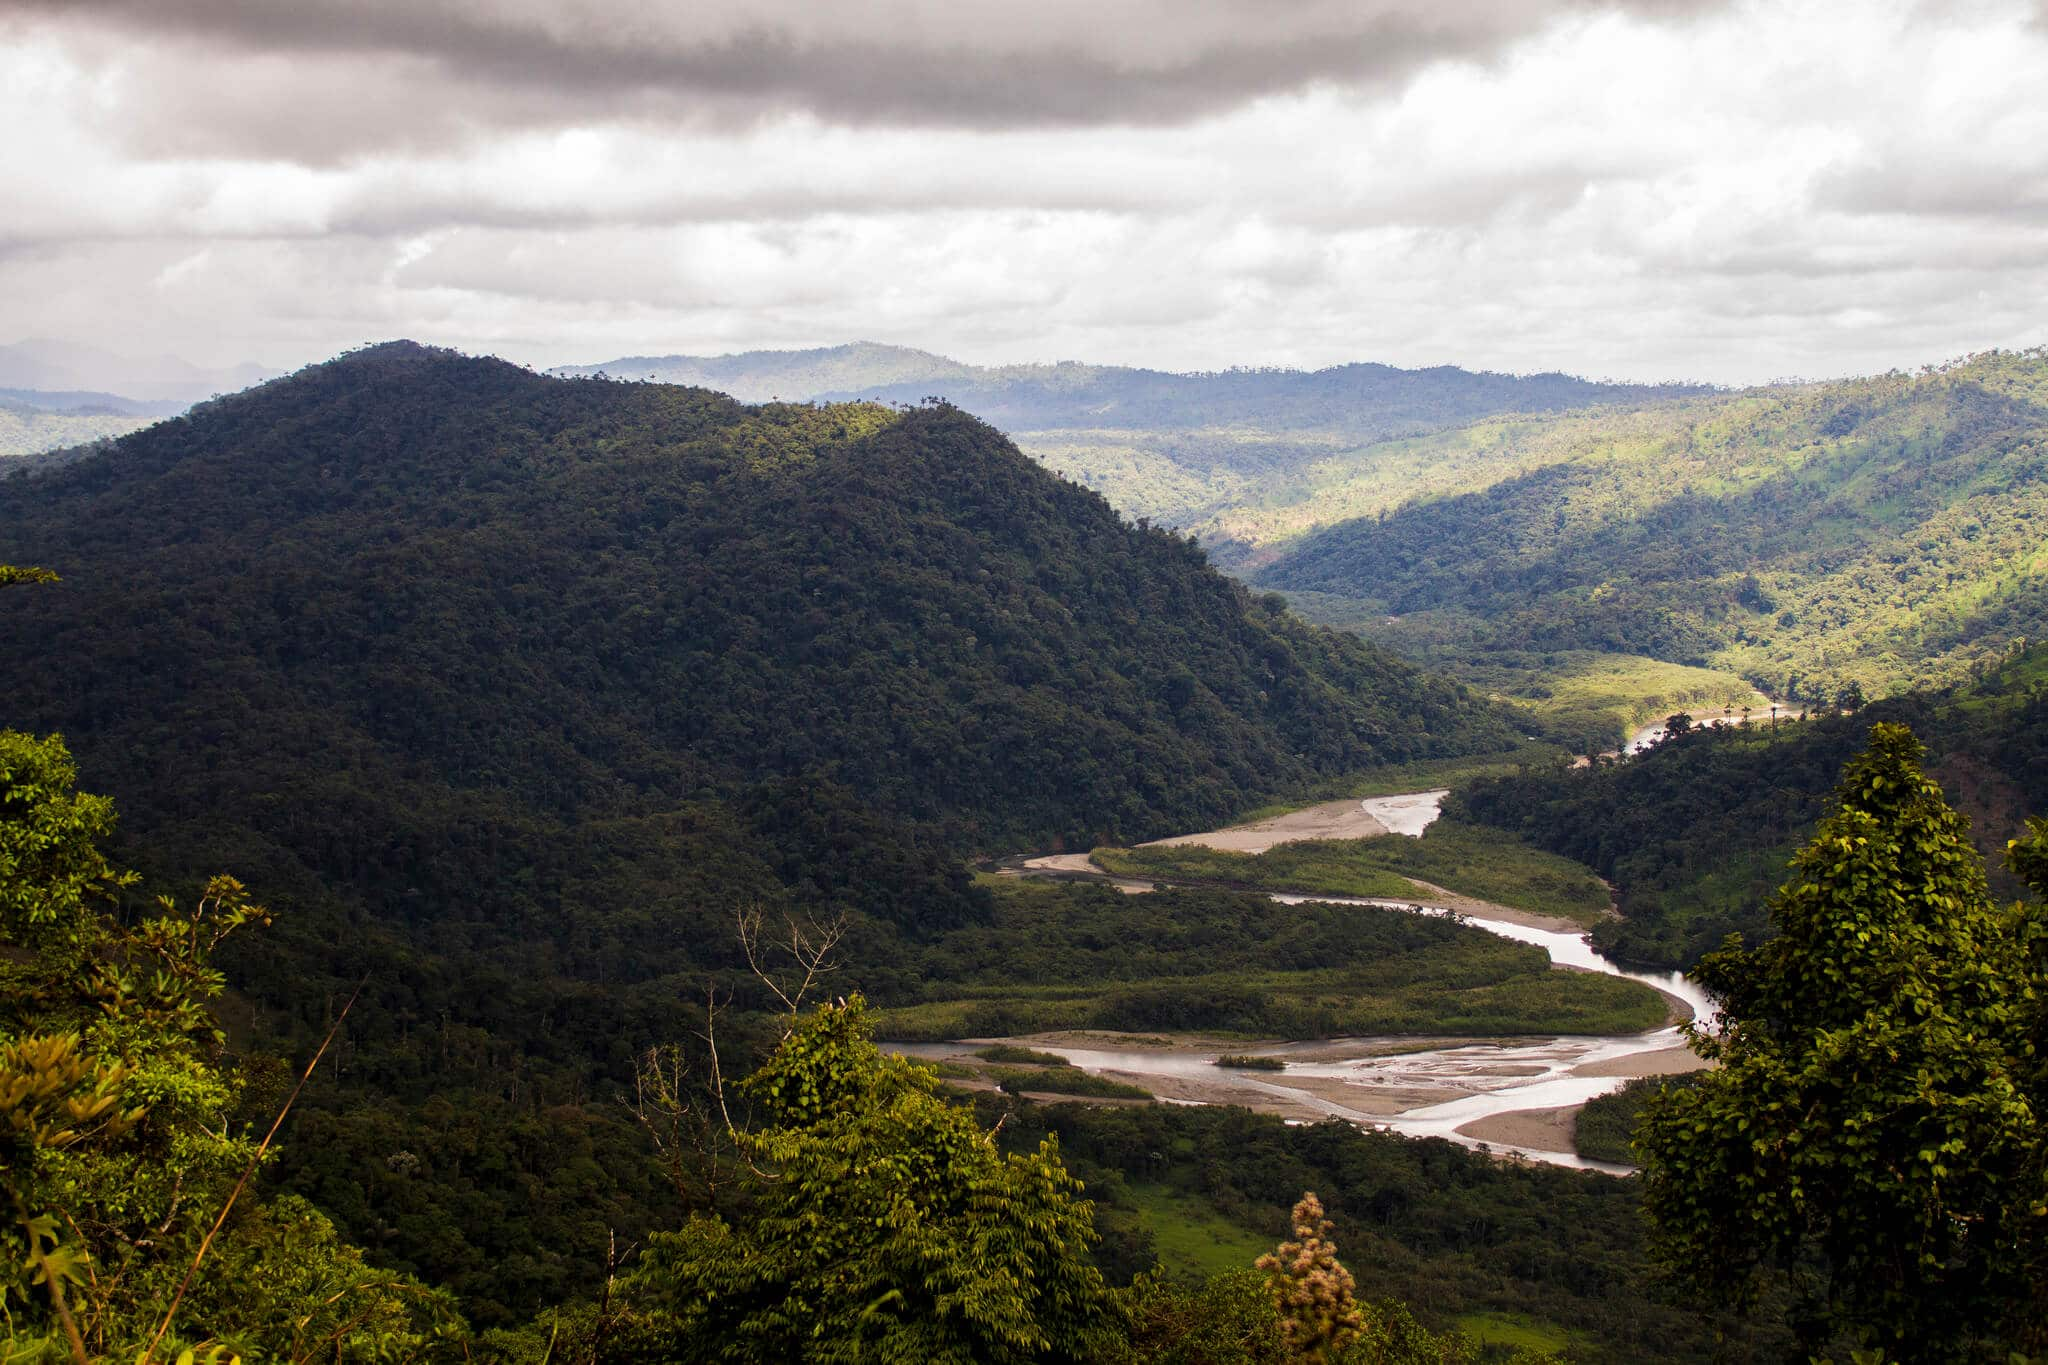 How to get to the amazon rainforest from Quito